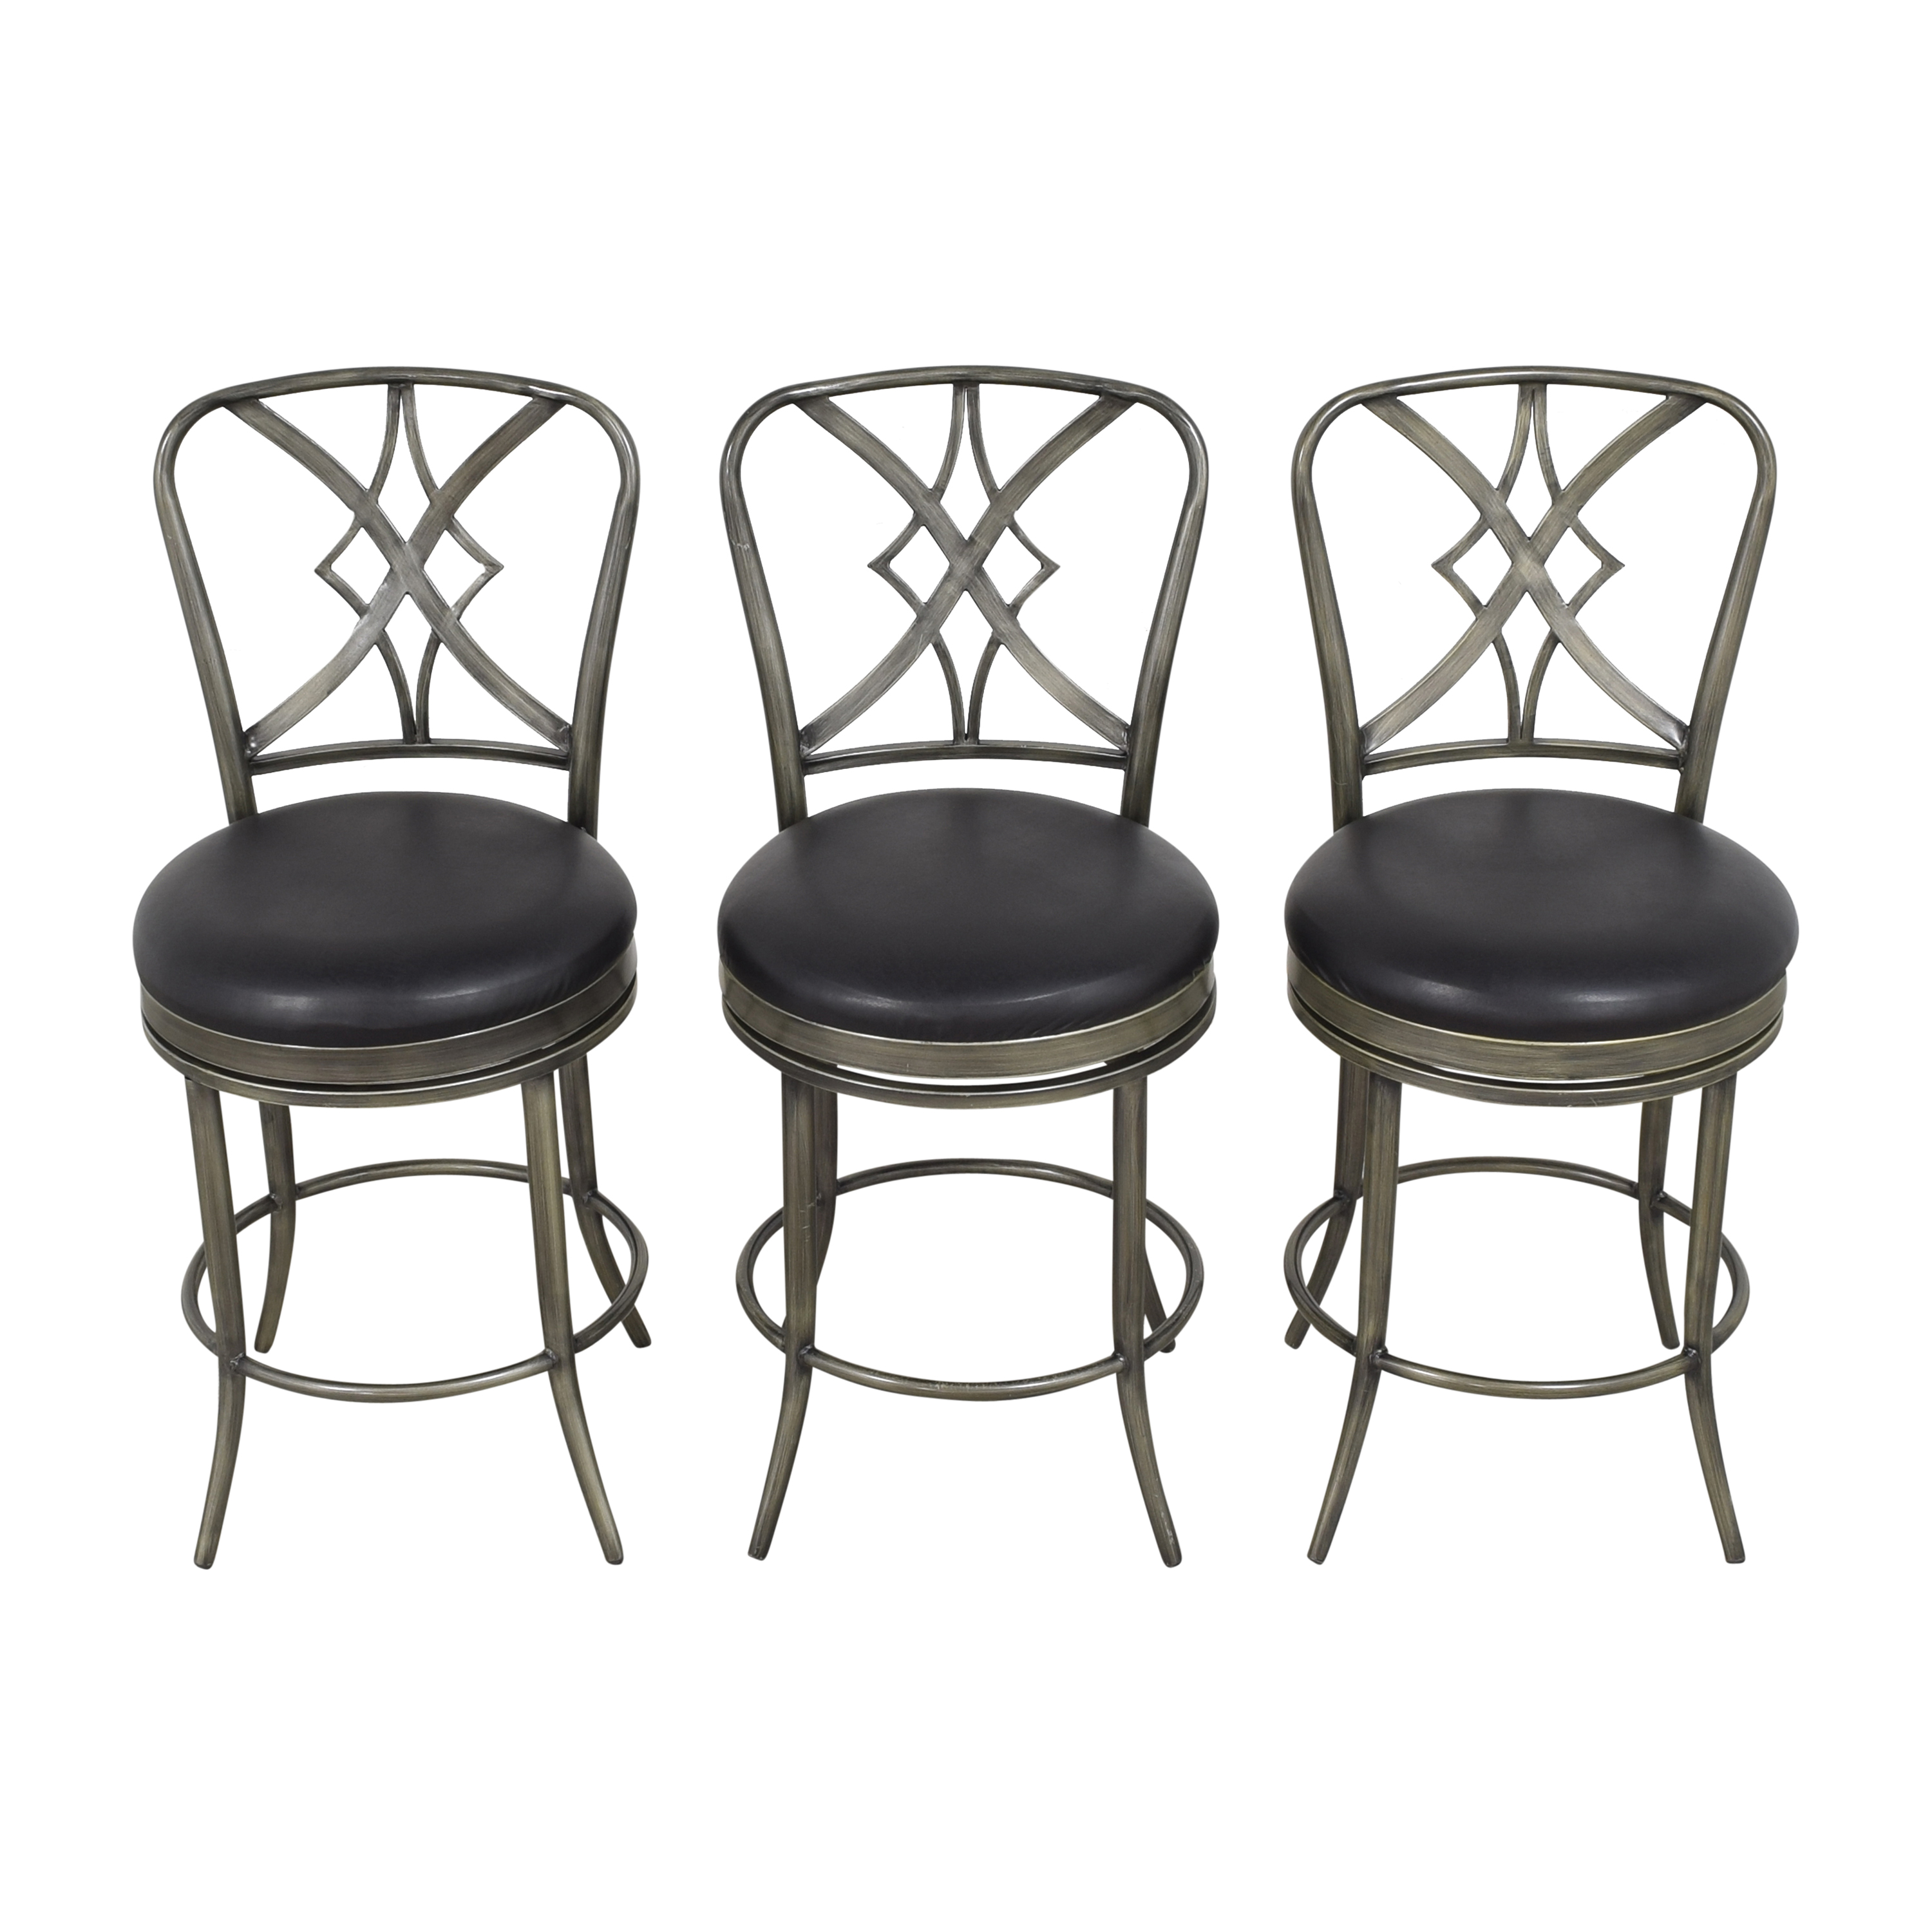 Hillsdale Furniture Hillsdale Furniture Swivel Bar Stools used